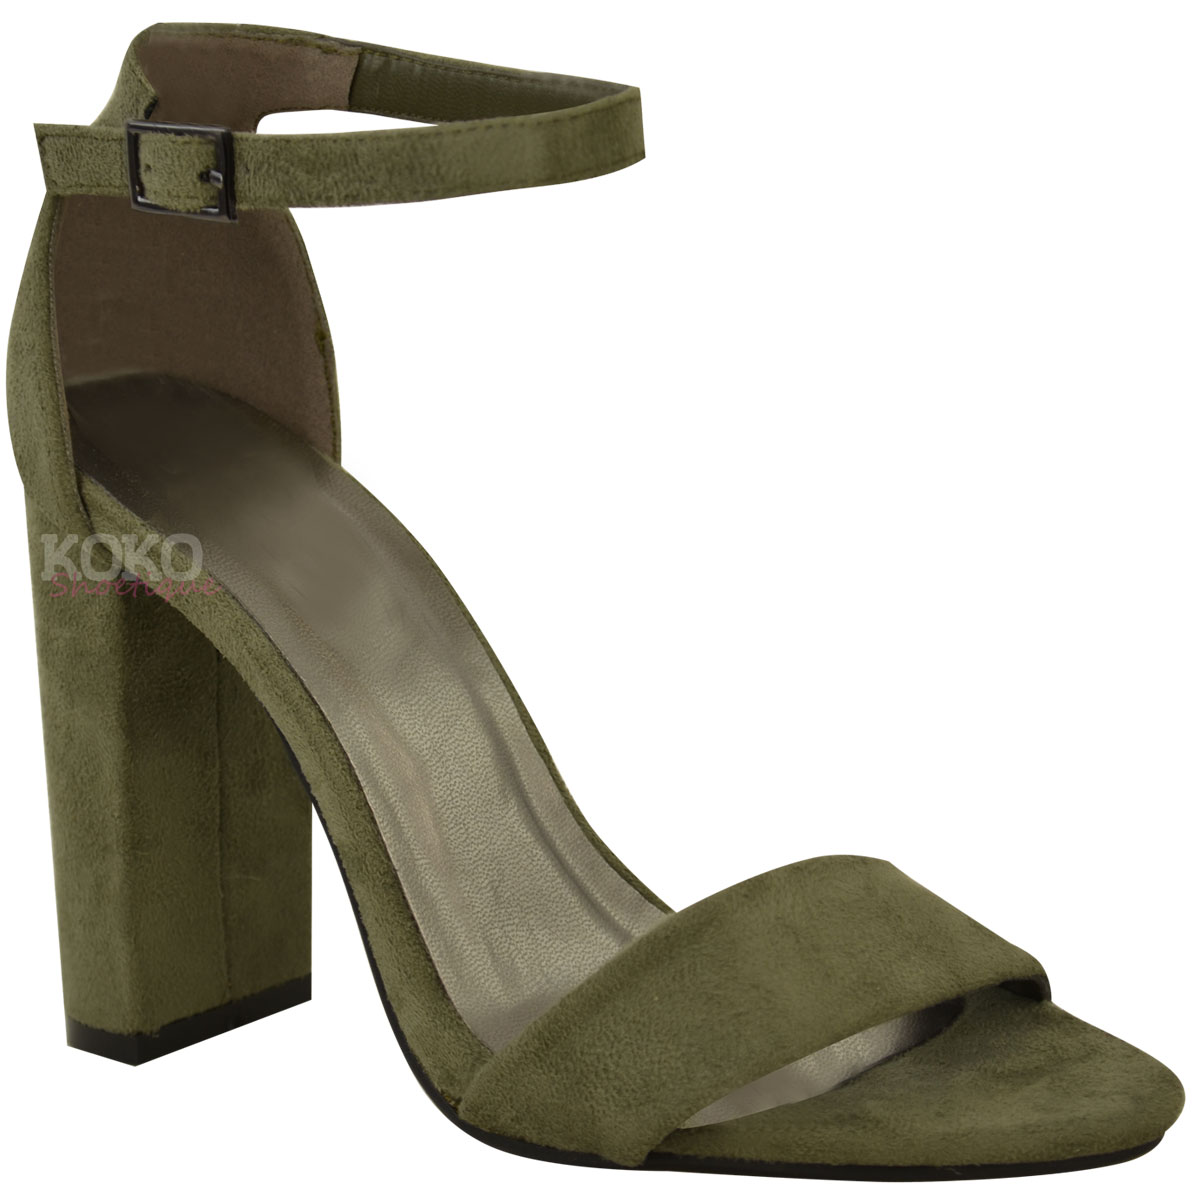 Womens-Ladies-Block-High-Heels-Ankle-Strap-Sexy-Open-Toe-Sandals-Shoes-Size-New miniatuur 53